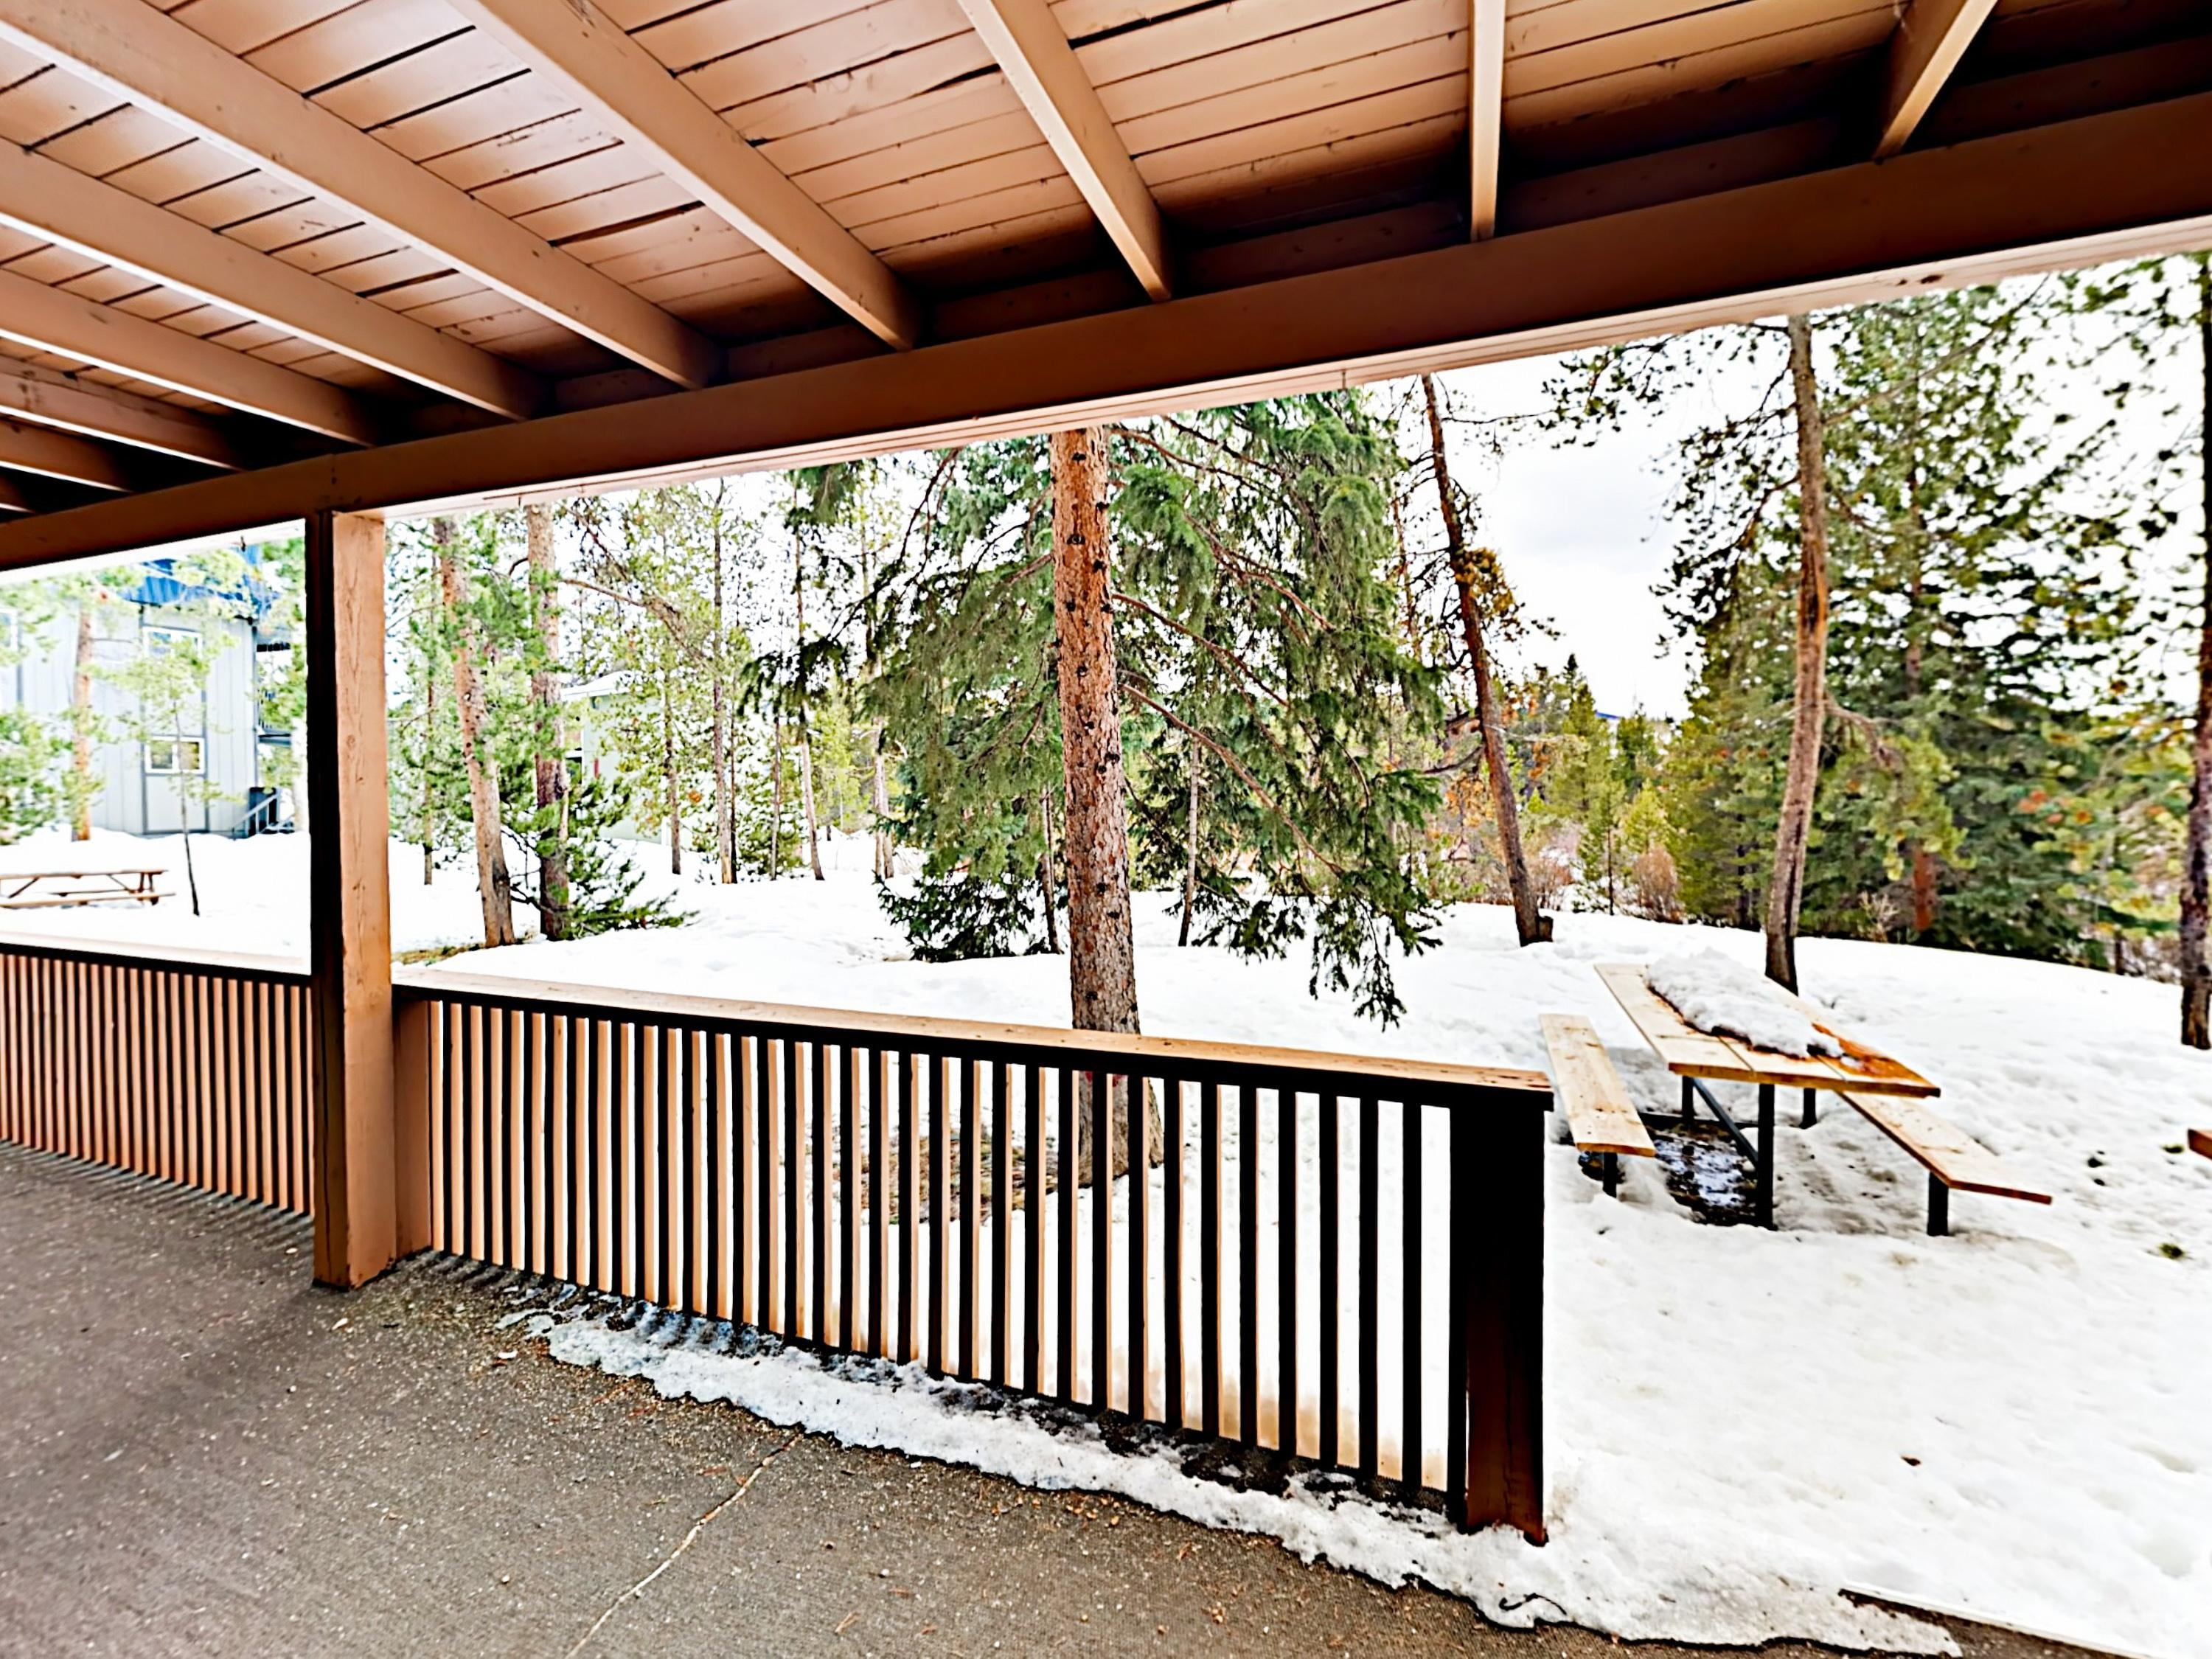 Nestled amongst the pines, this streamside condo sits adjacent to the Fraser River.